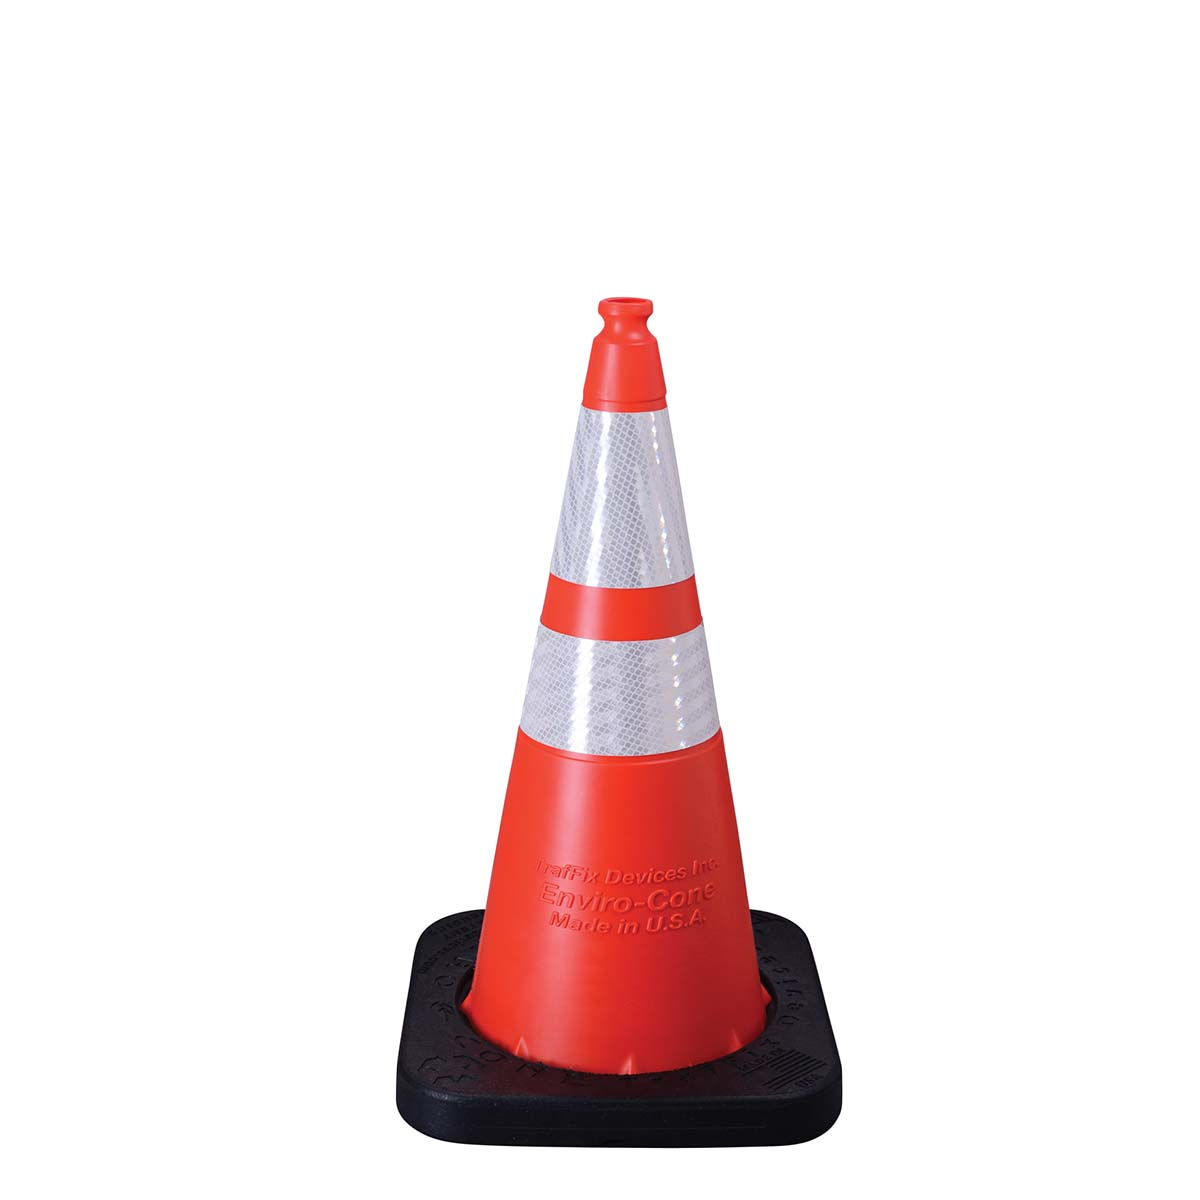 "28"" / 10 LB. ENVIRO CONE ORANGE WITH COLLARS"